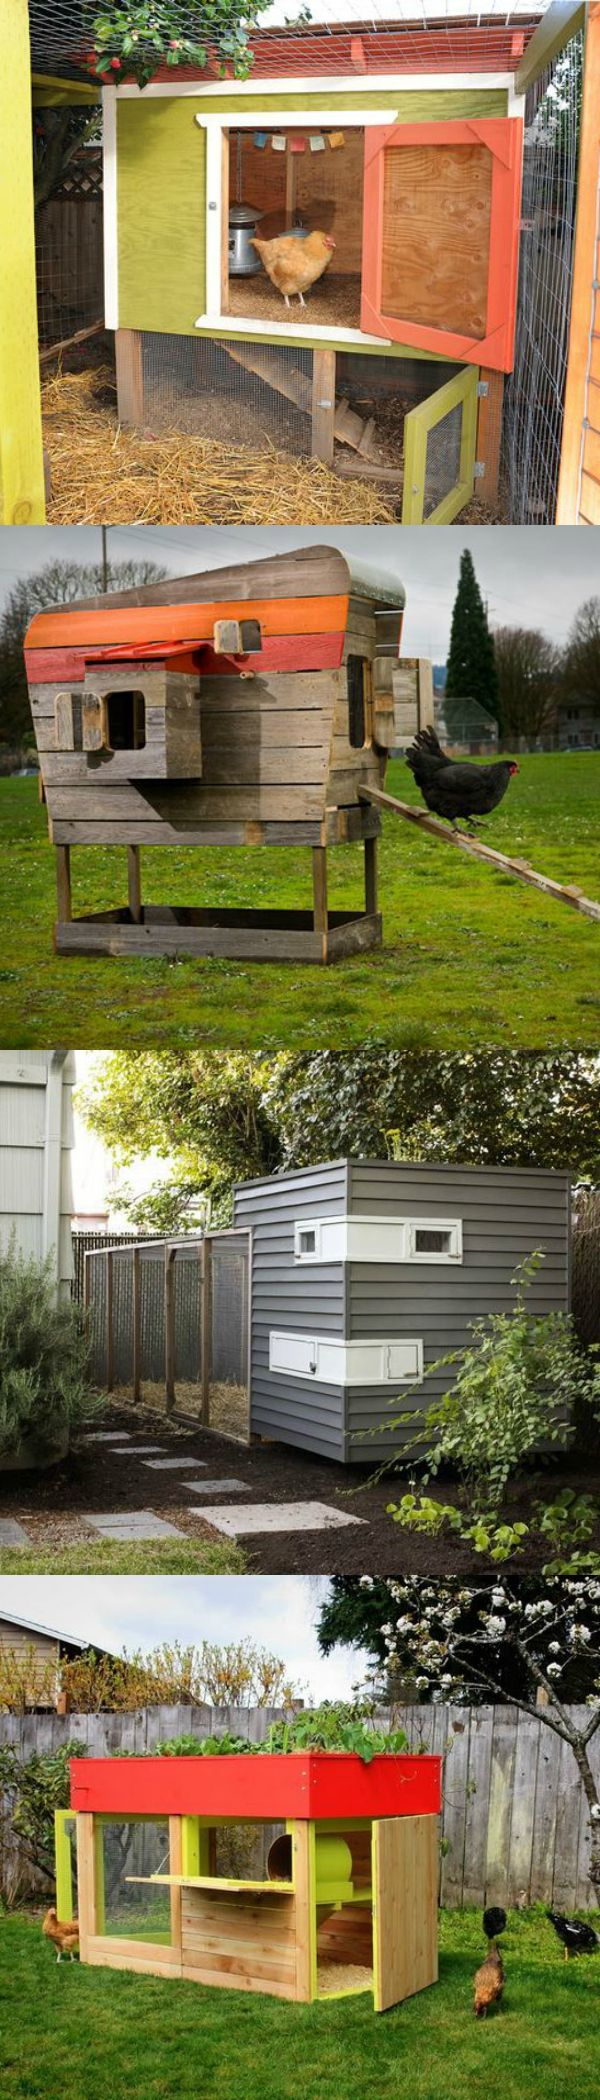 The most creative and beautiful urban chicken coops